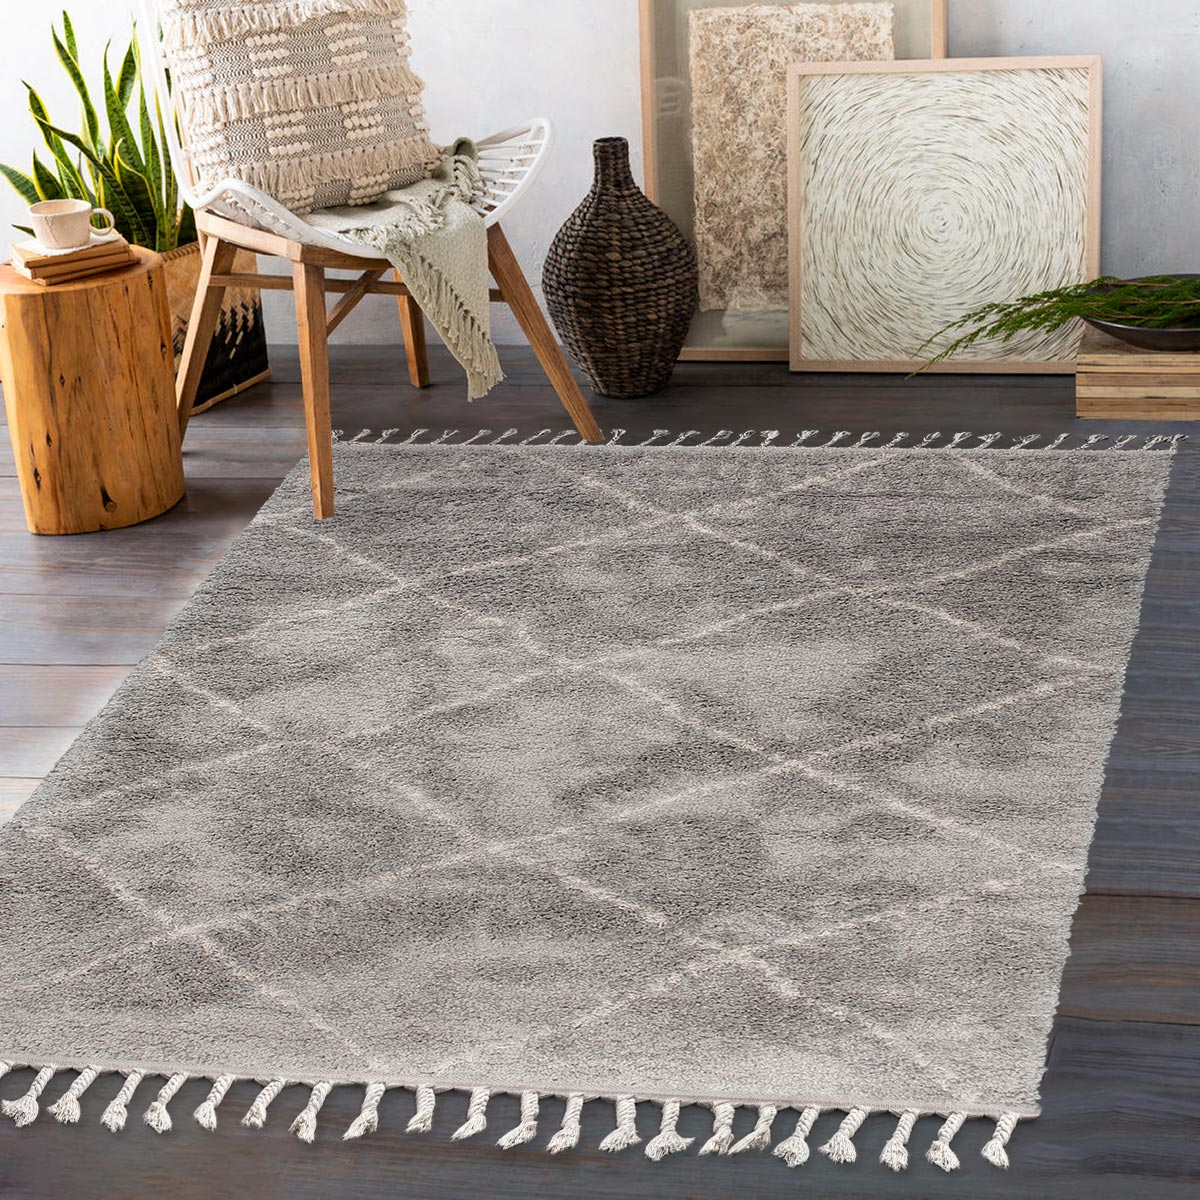 Shaggy Marrakech Rug 07 Grey/Cream 3